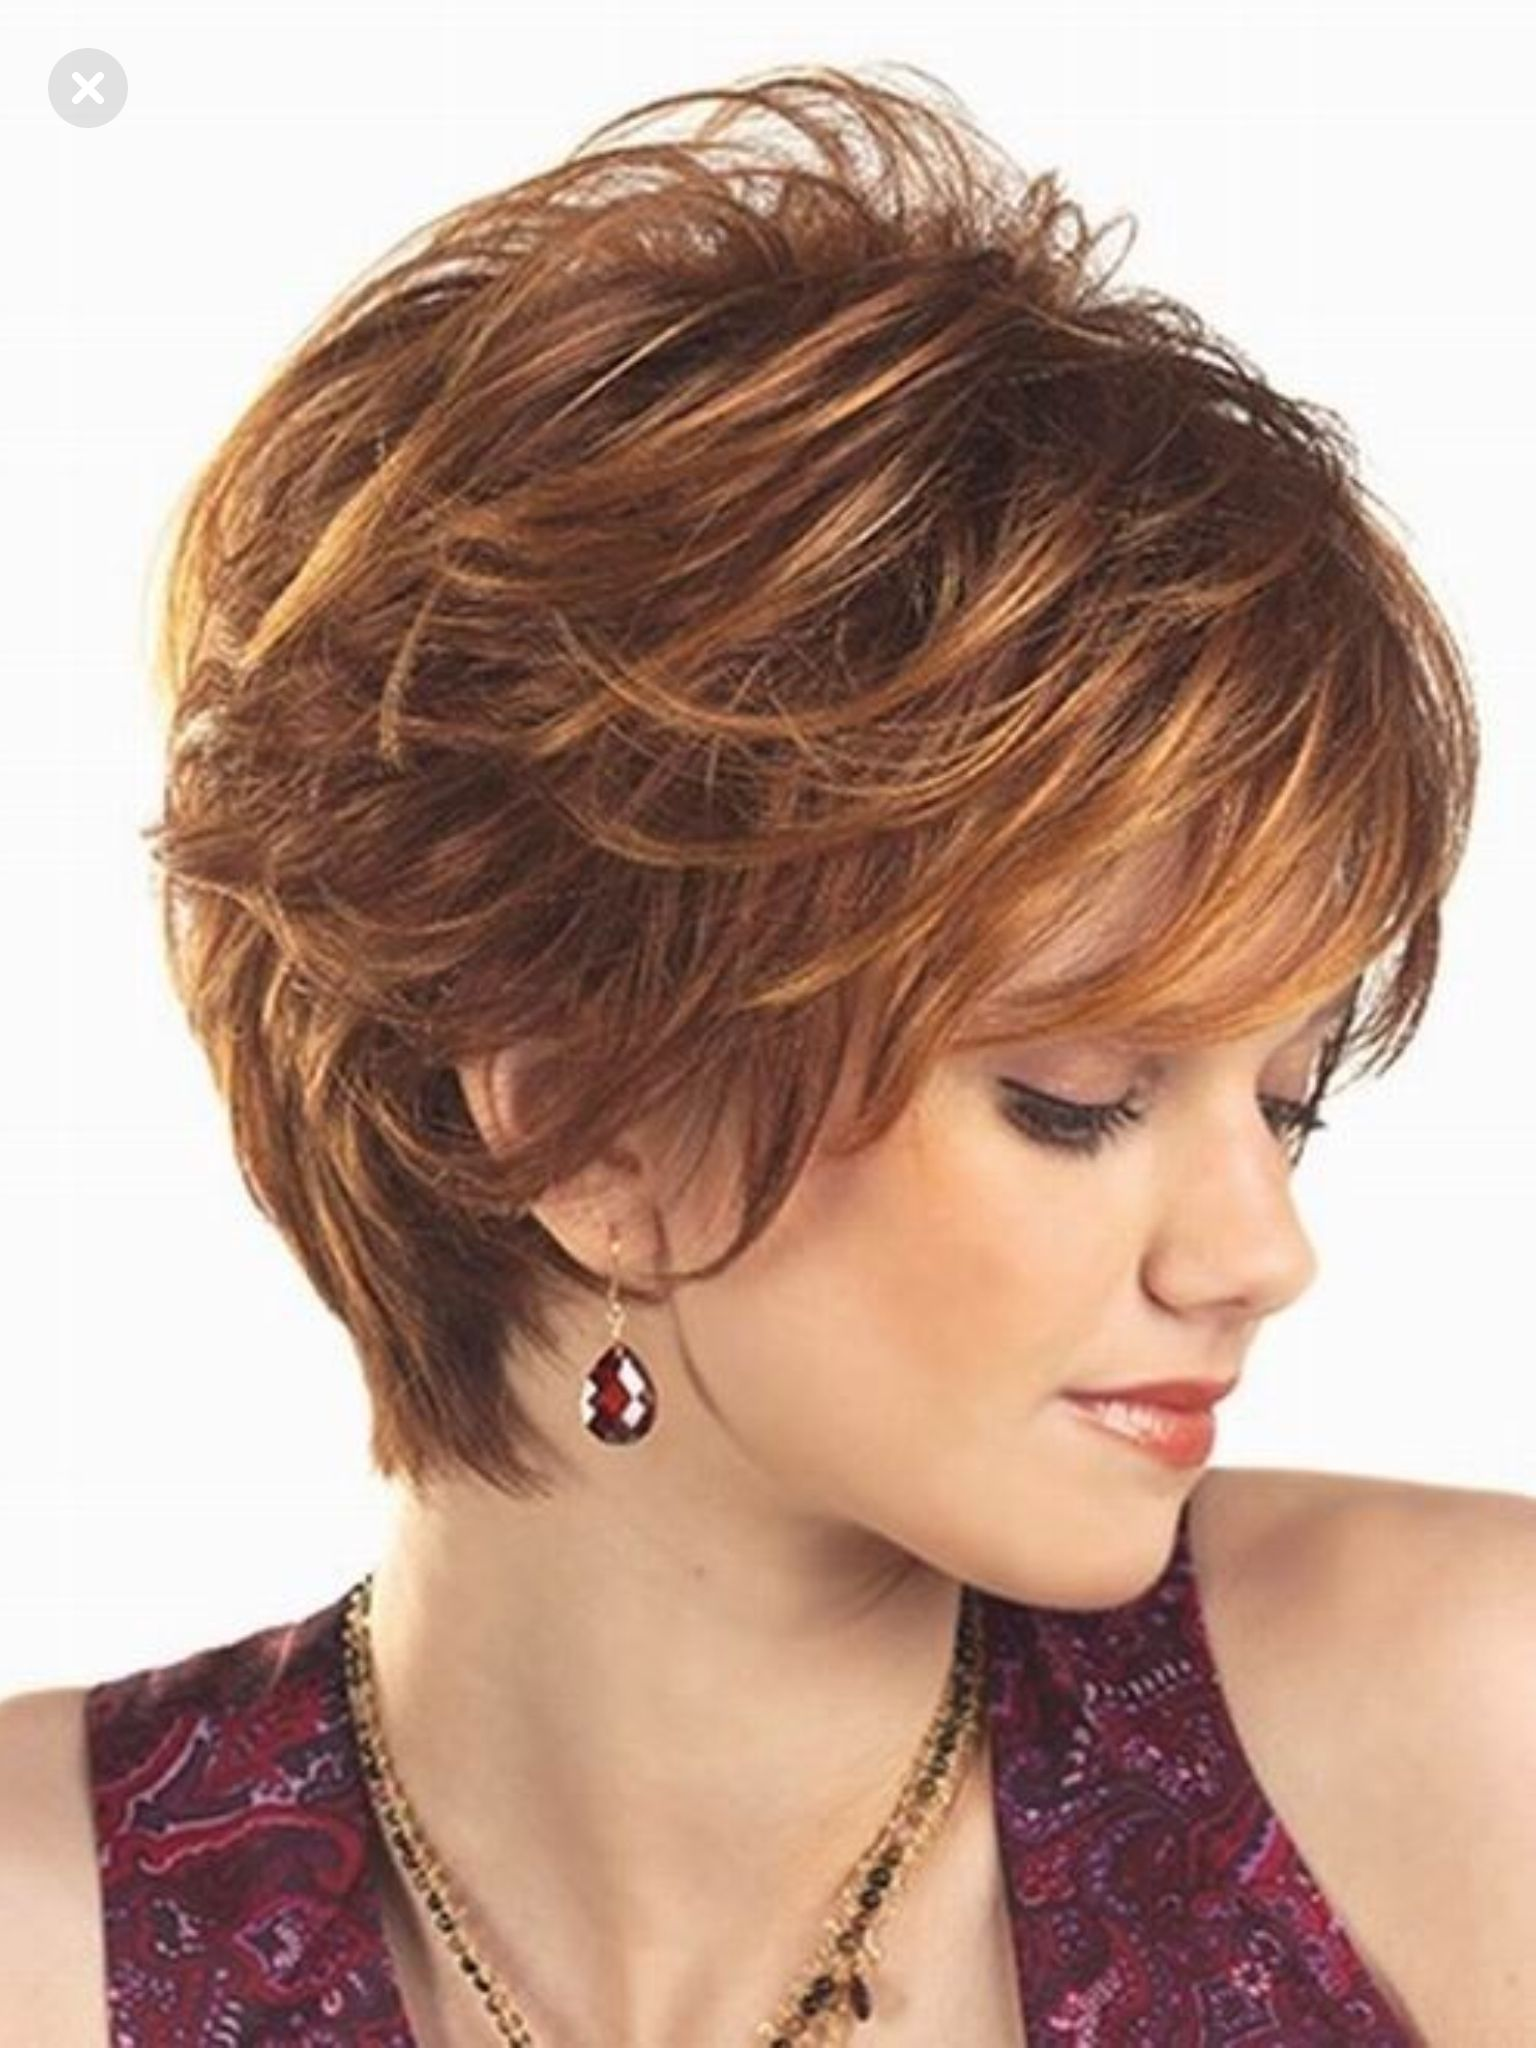 Pin by Darlene Weber on Hair (With images) Thick hair